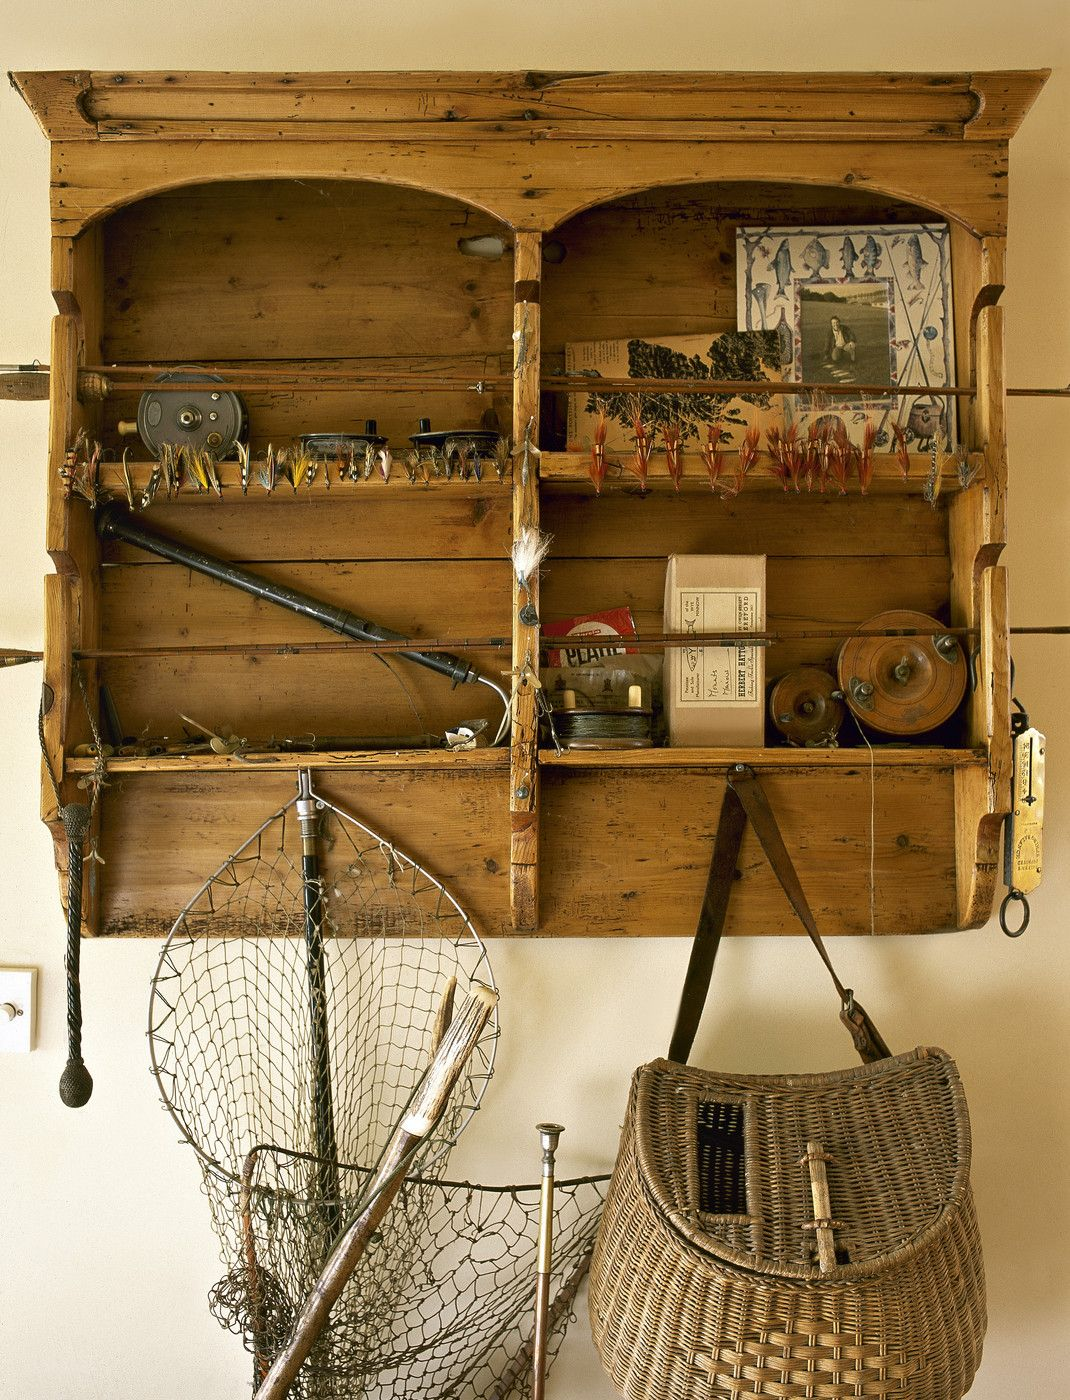 Fishing Tackle Design Ideas And Photos To Inspire Your Next Home Decor Project Or Remodel Check Out Photo Galleries Full Of For